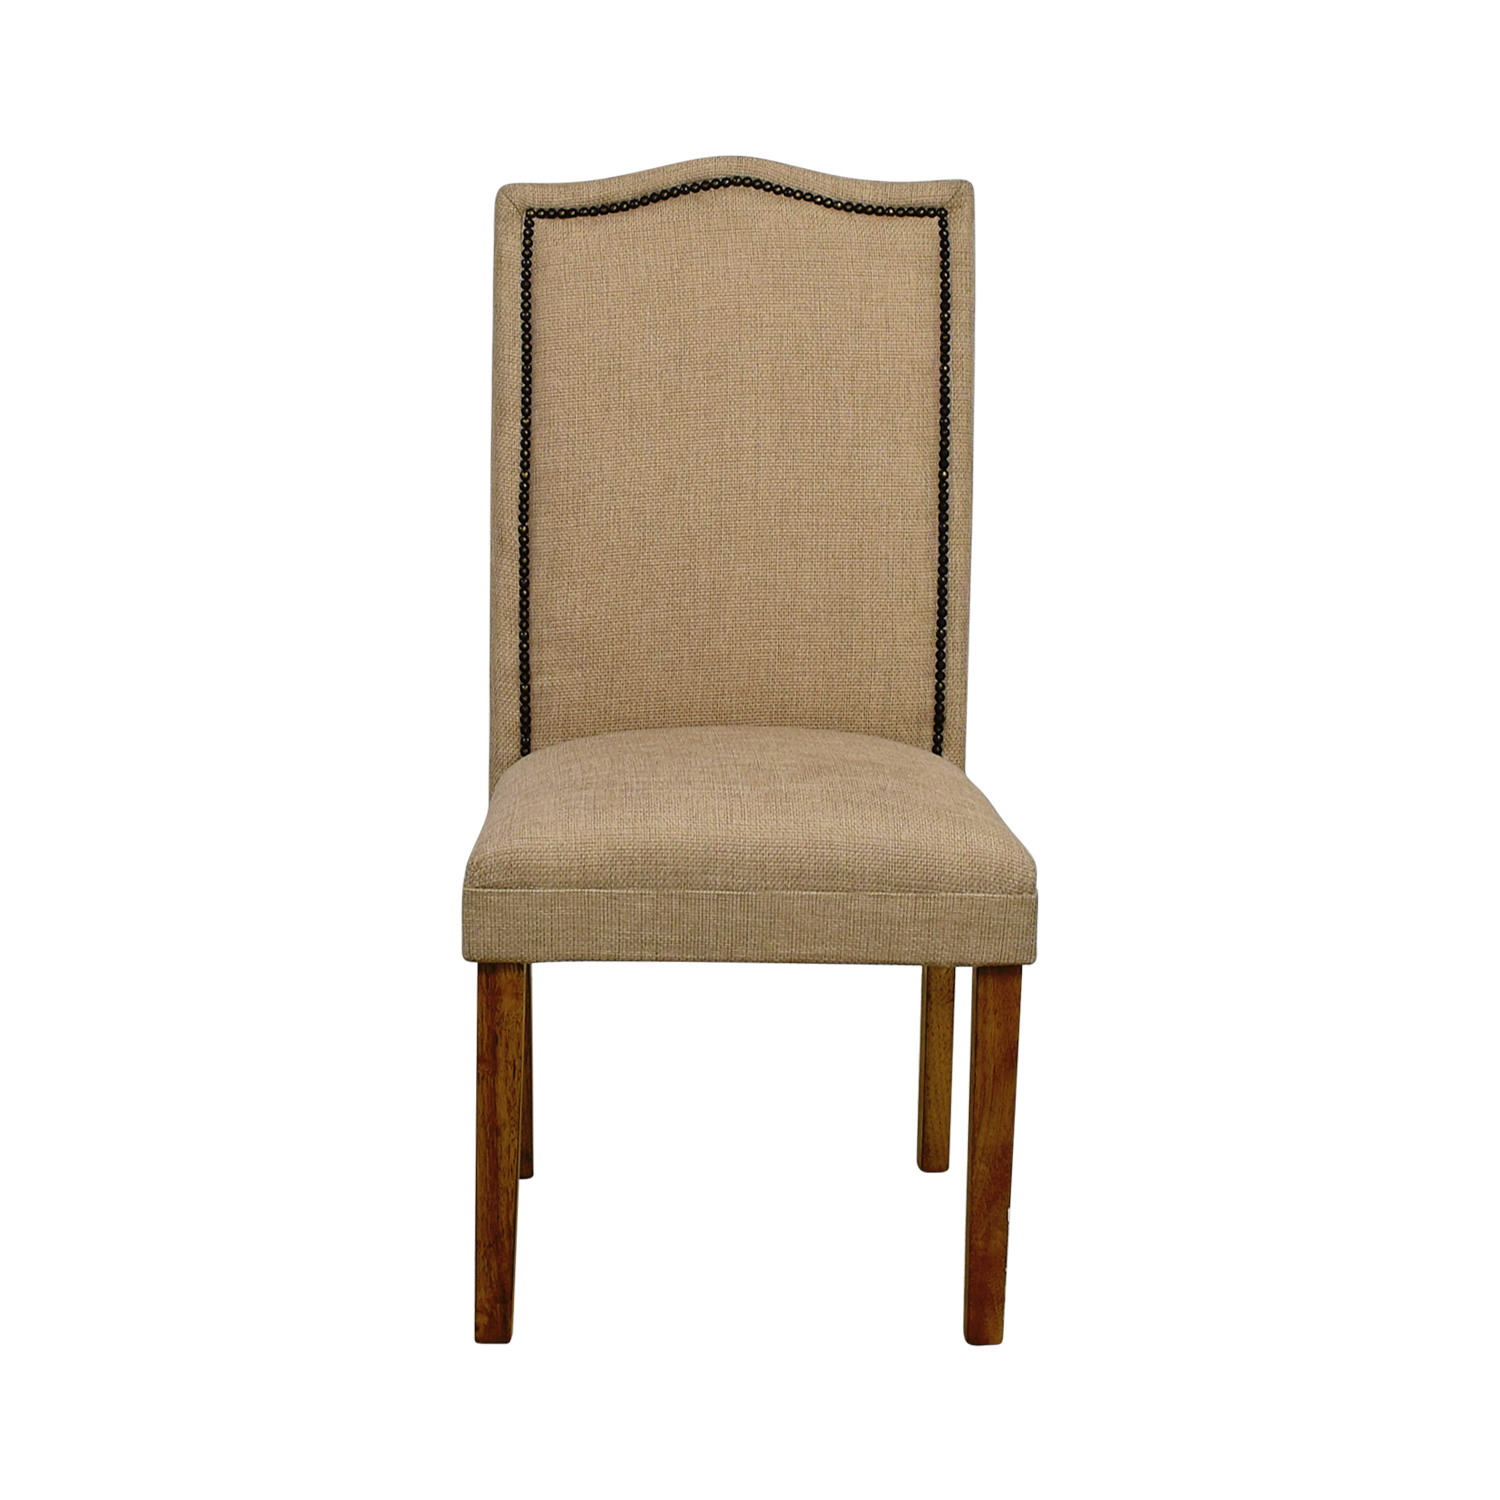 Beige High Back Chair with Nailhead Accent Dining Chairs